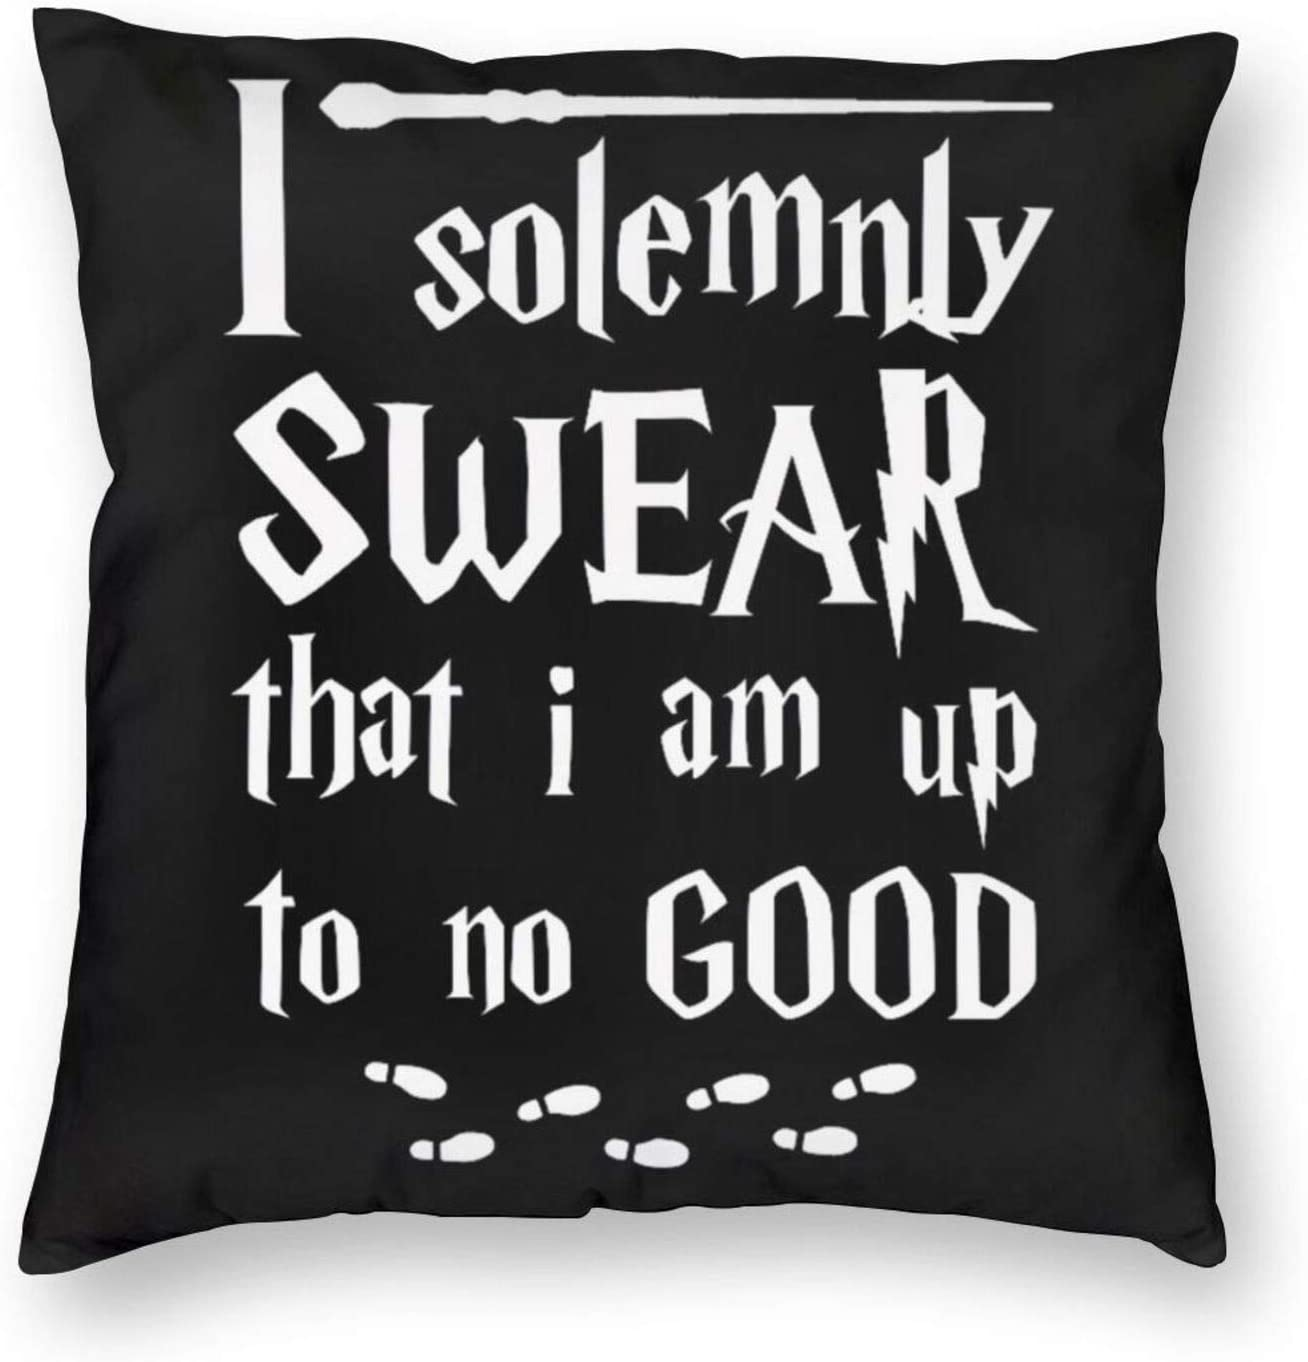 antcreptson I Solemnly Swear That I Am Up to No Good Throw Pillow Case Cushion Cover for Sofa Couch Living Room Home Decor - Vintage Pillow Case for Book Lover/Bookworm/Librarian(18 x 18 Inch)